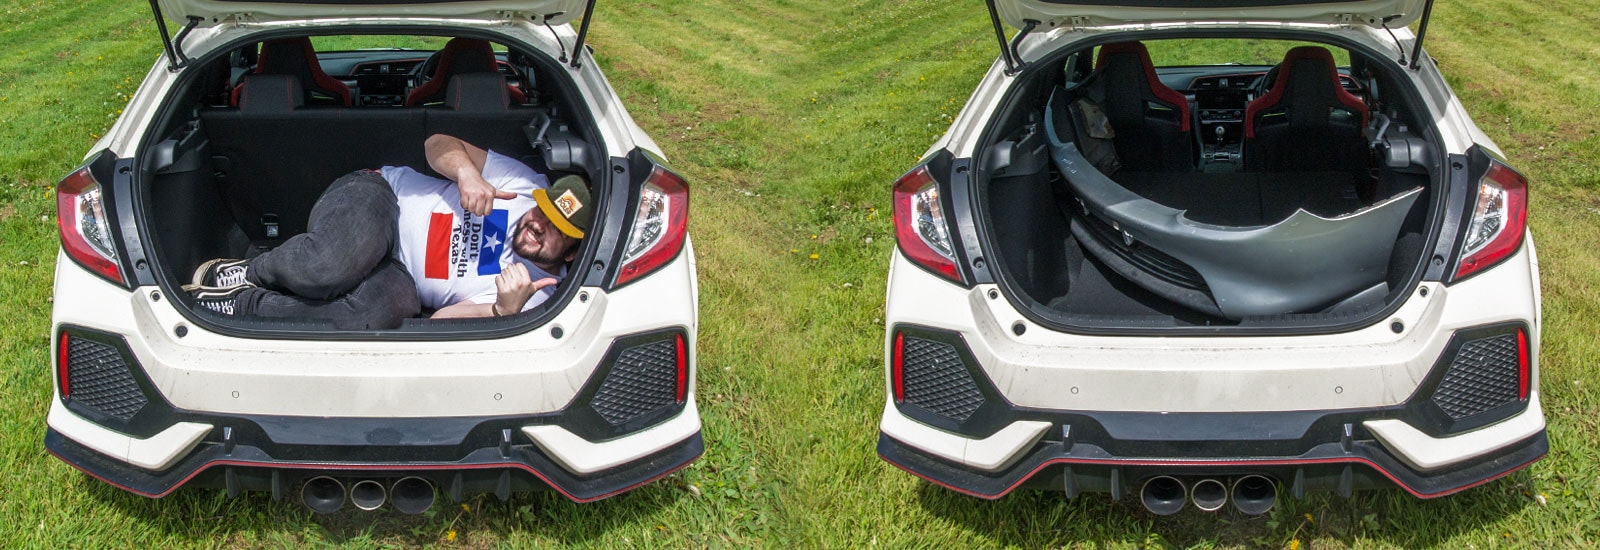 Championship White Honda Civic Type R parked with the boot open, viewed from the rear